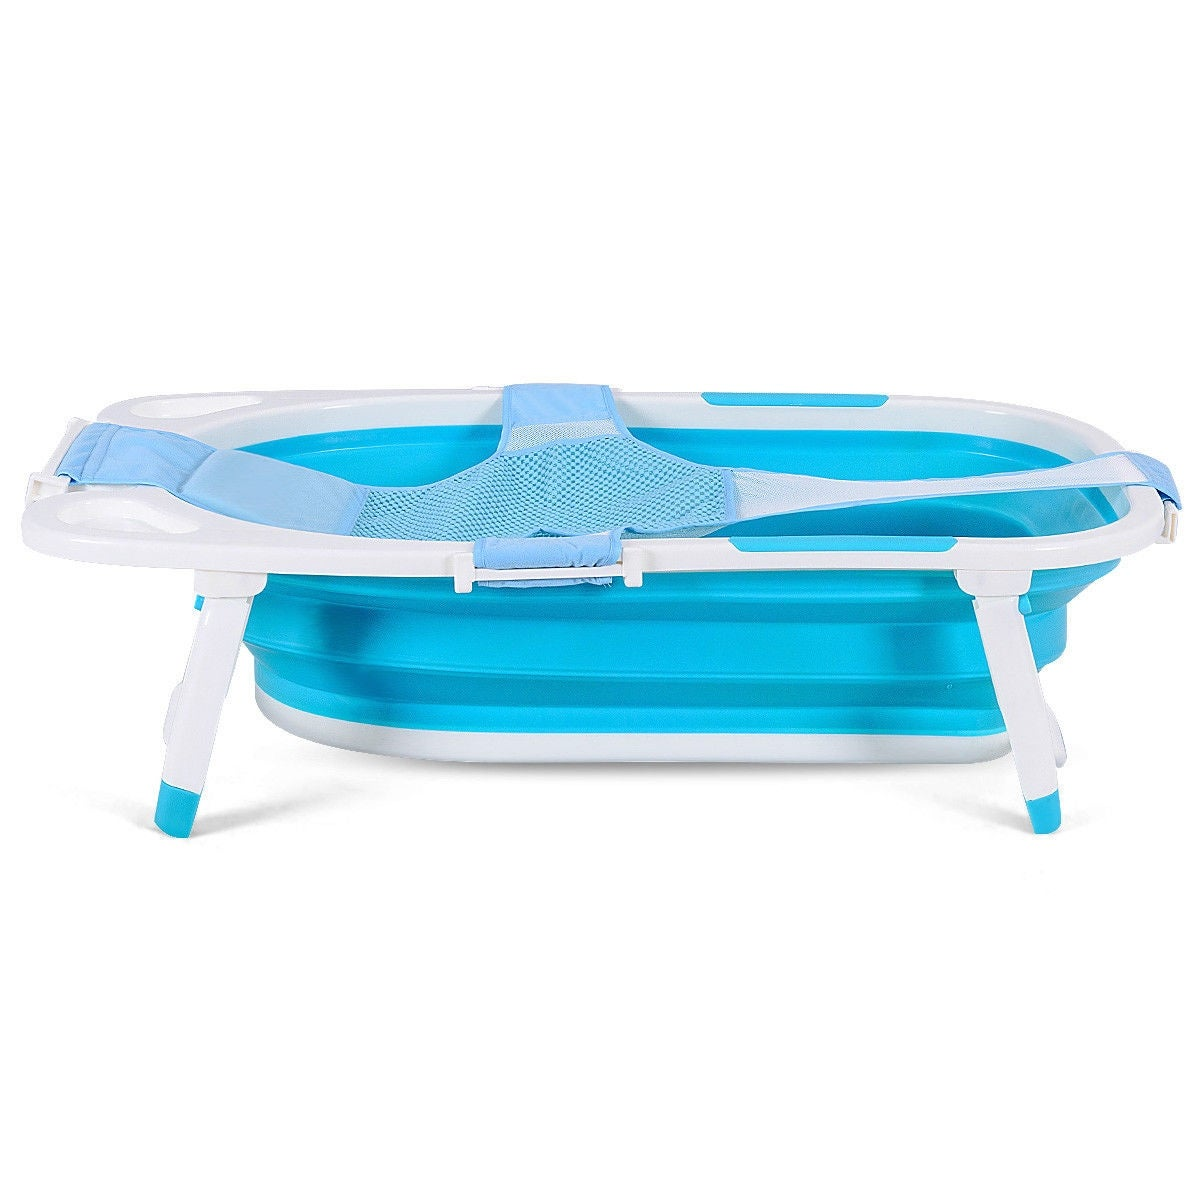 Shop Gymax Blue Baby Folding Bathtub Infant Collapsible Portable ...